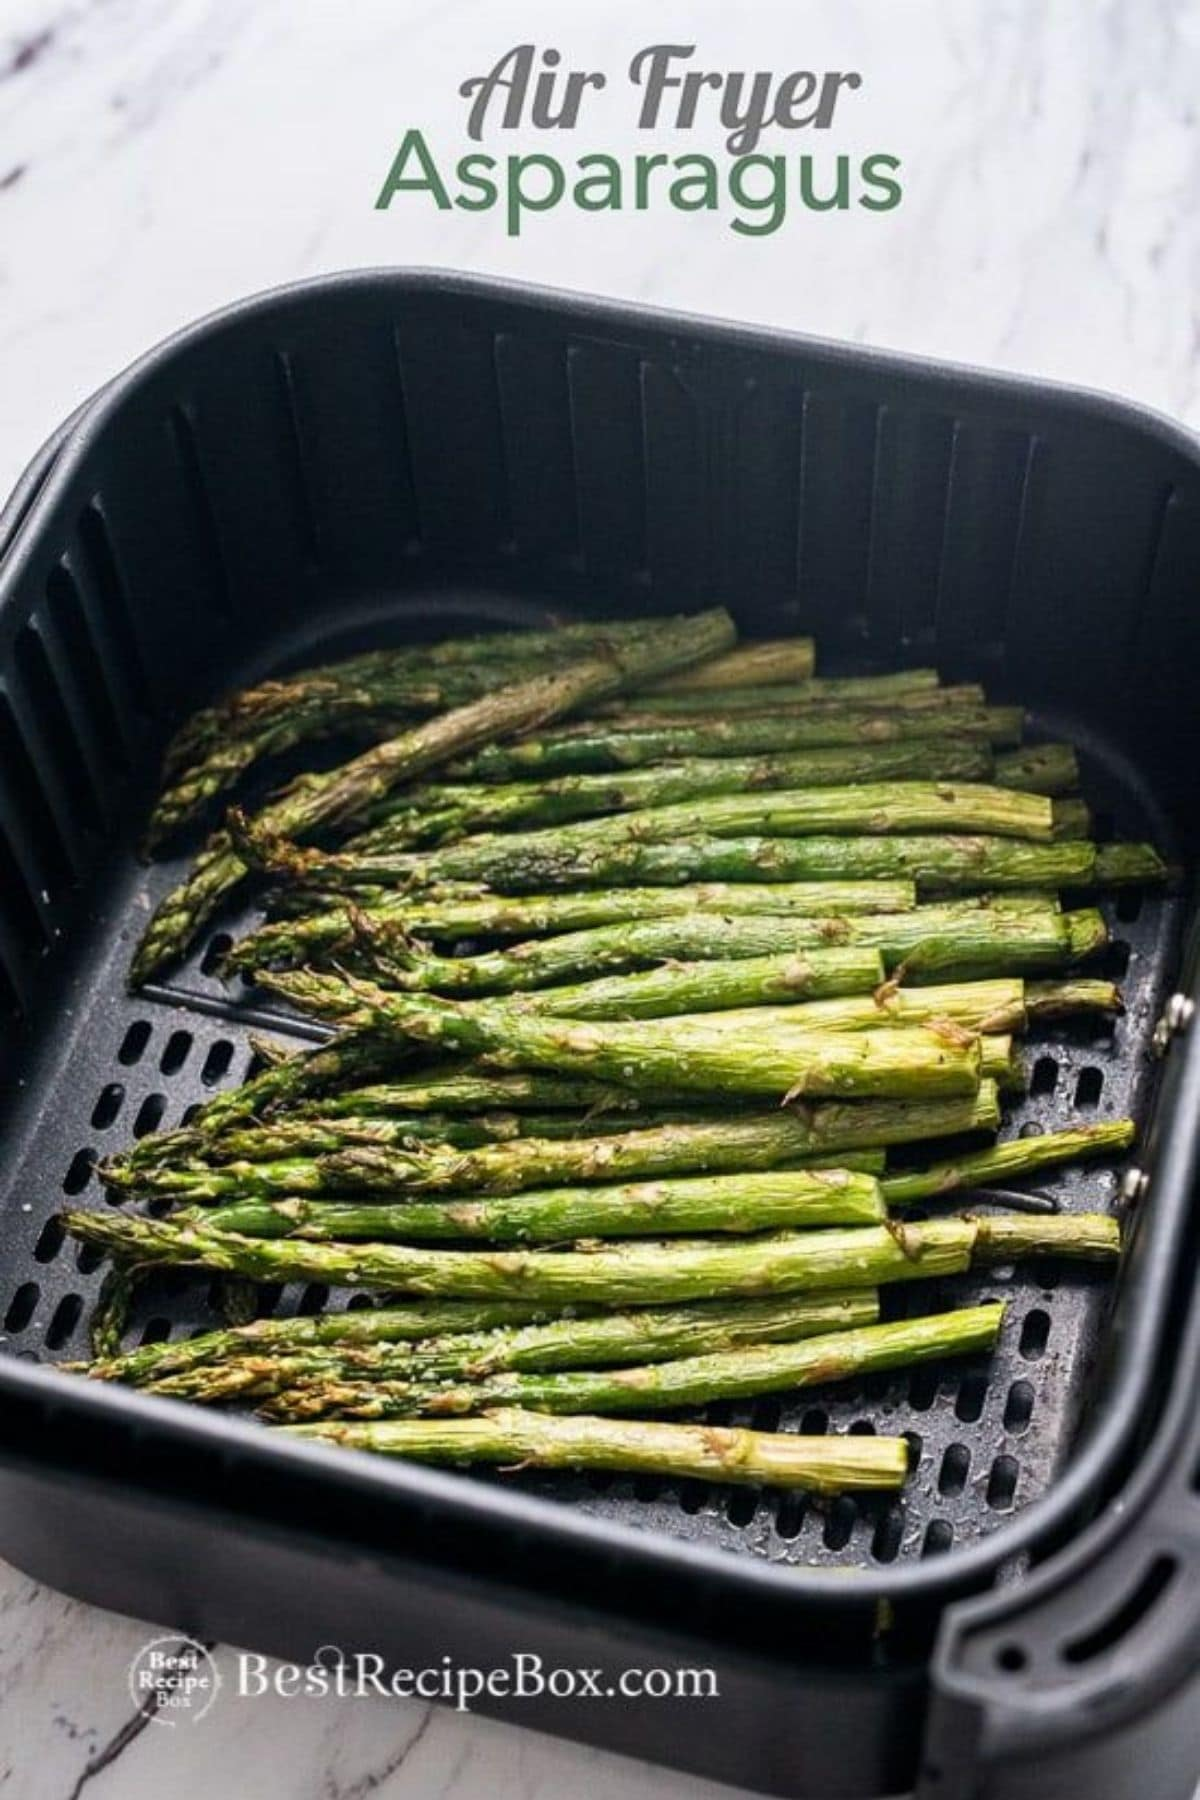 Layer of asparagus in an air fryer basket